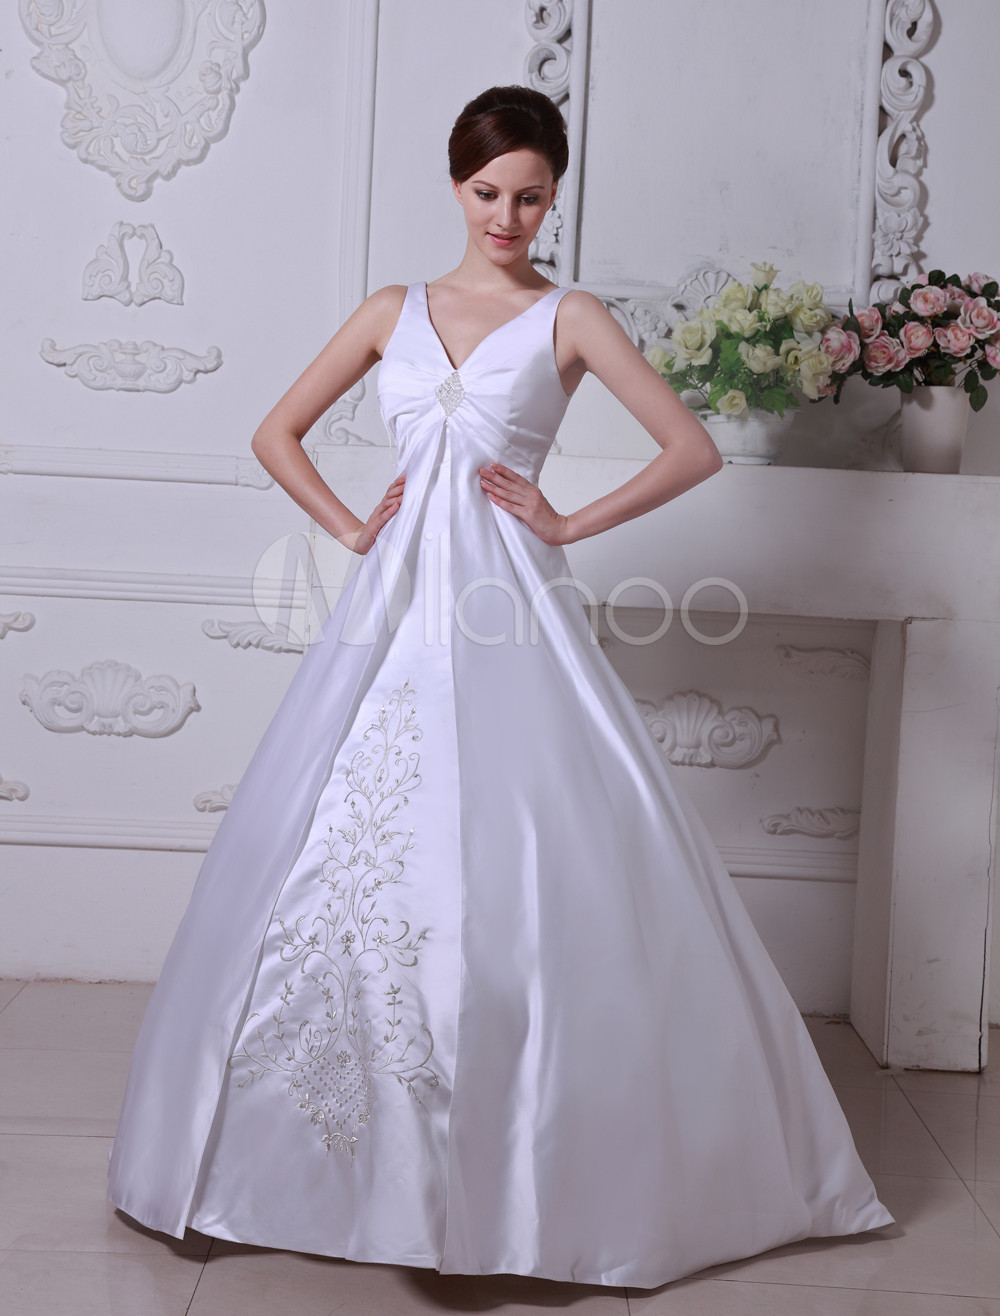 White Wedding Dresses V Neck Satin Bridal Gown A Line Lace Embroidered Beading Pleated Chapel Train Wedding Gown